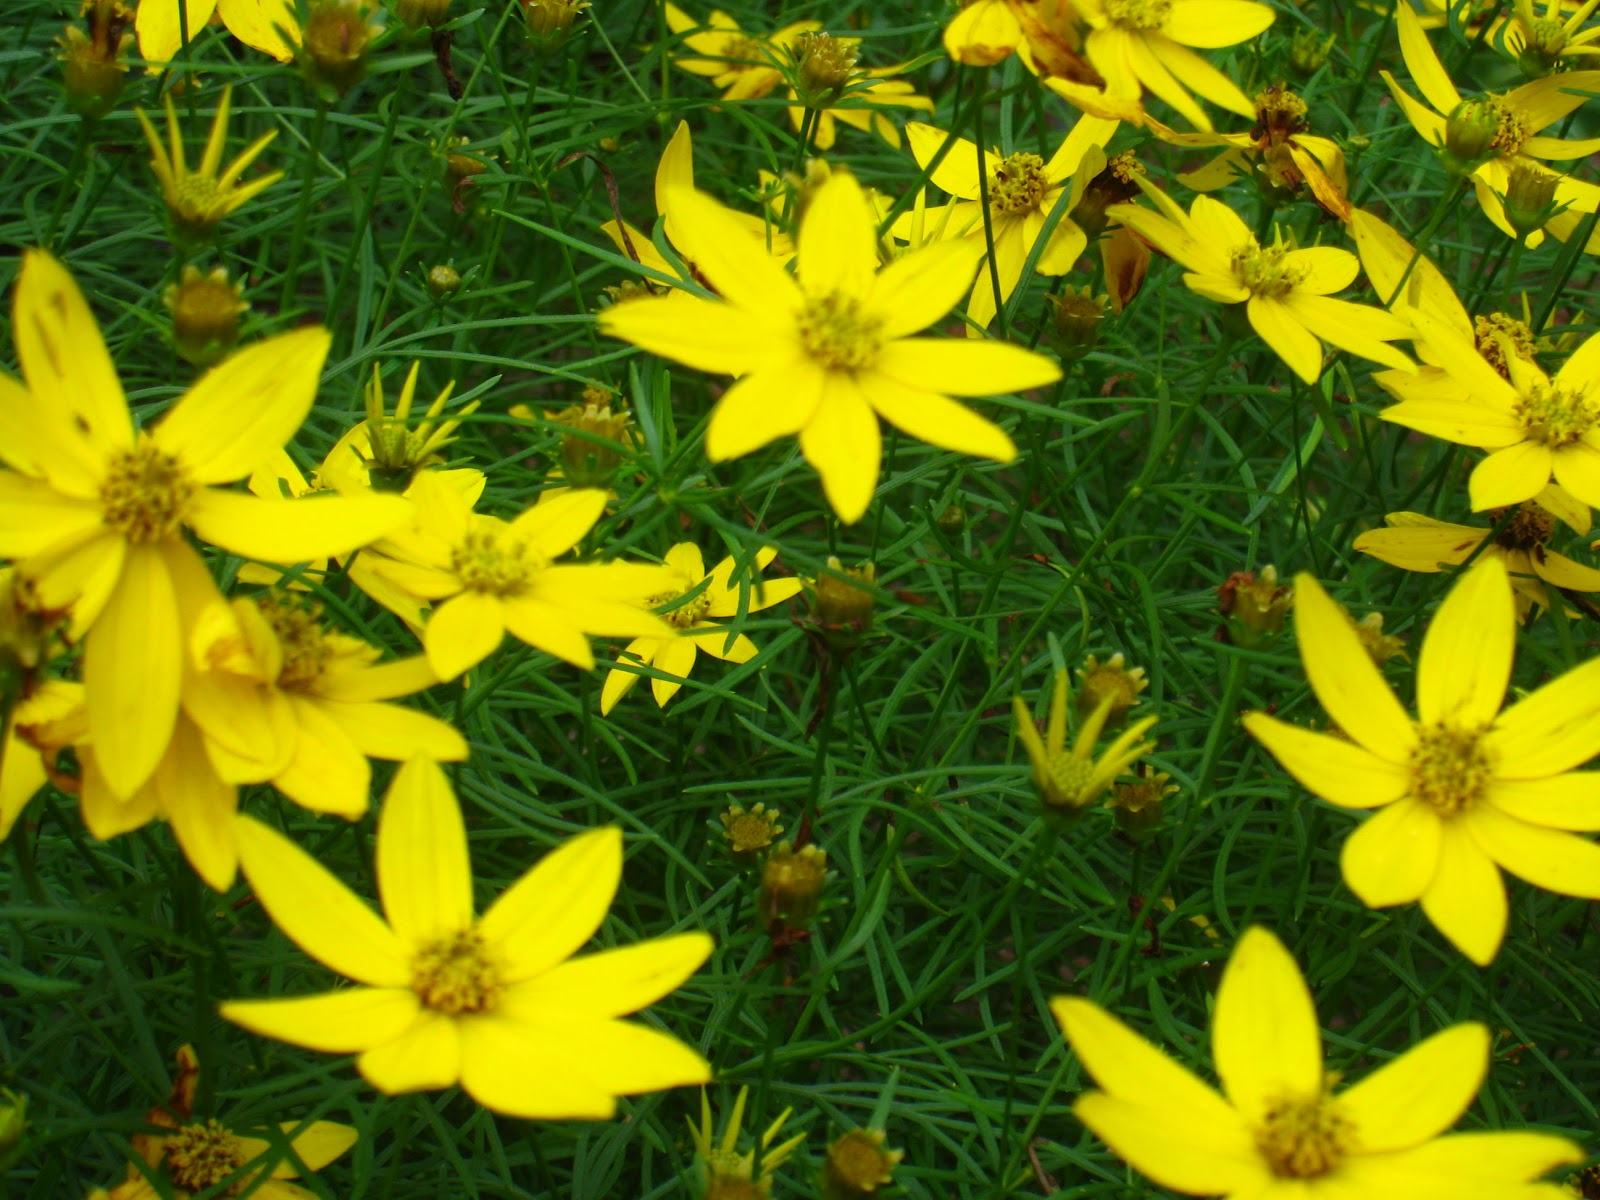 Top perennials in 2011 schmalz landscaping another sun perennial that was quite popular last year was tickseed coreopsis zagreb the sunny yellow flowers bloom almost all summer and the plant has mightylinksfo